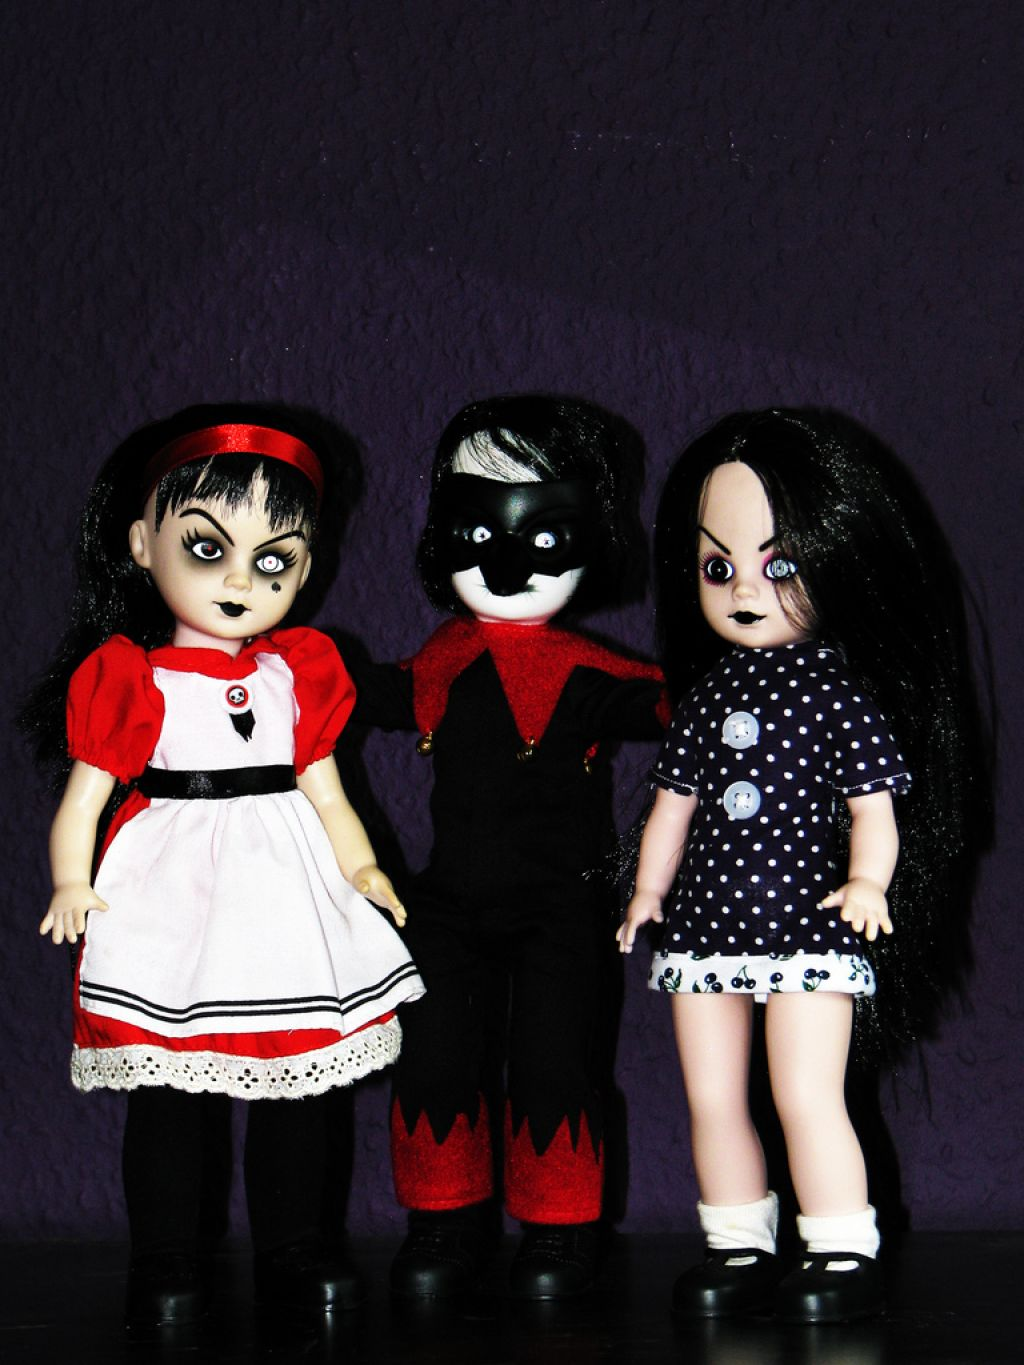 living dead doll9 Morbid Living Dead Dolls